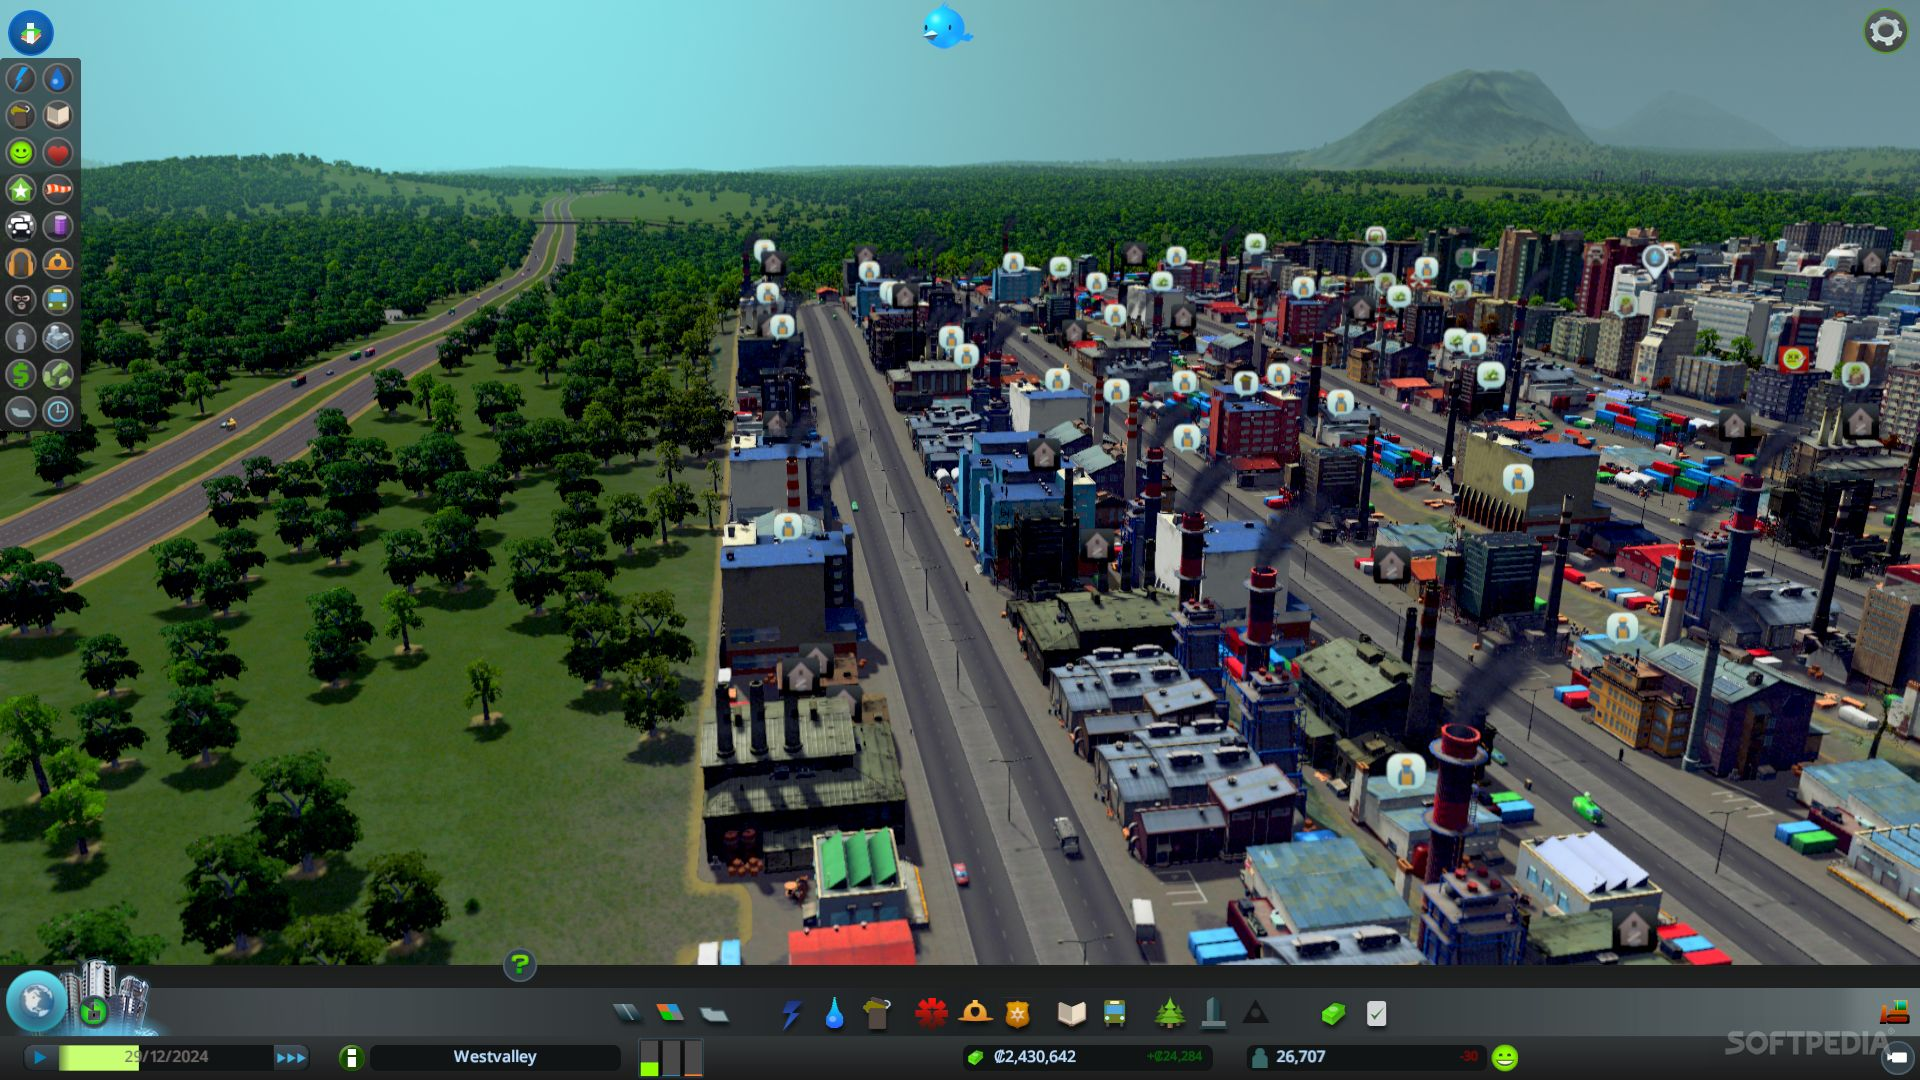 Cities: Skylines Patch 1 07c Is Live, Deals with Technical Issues